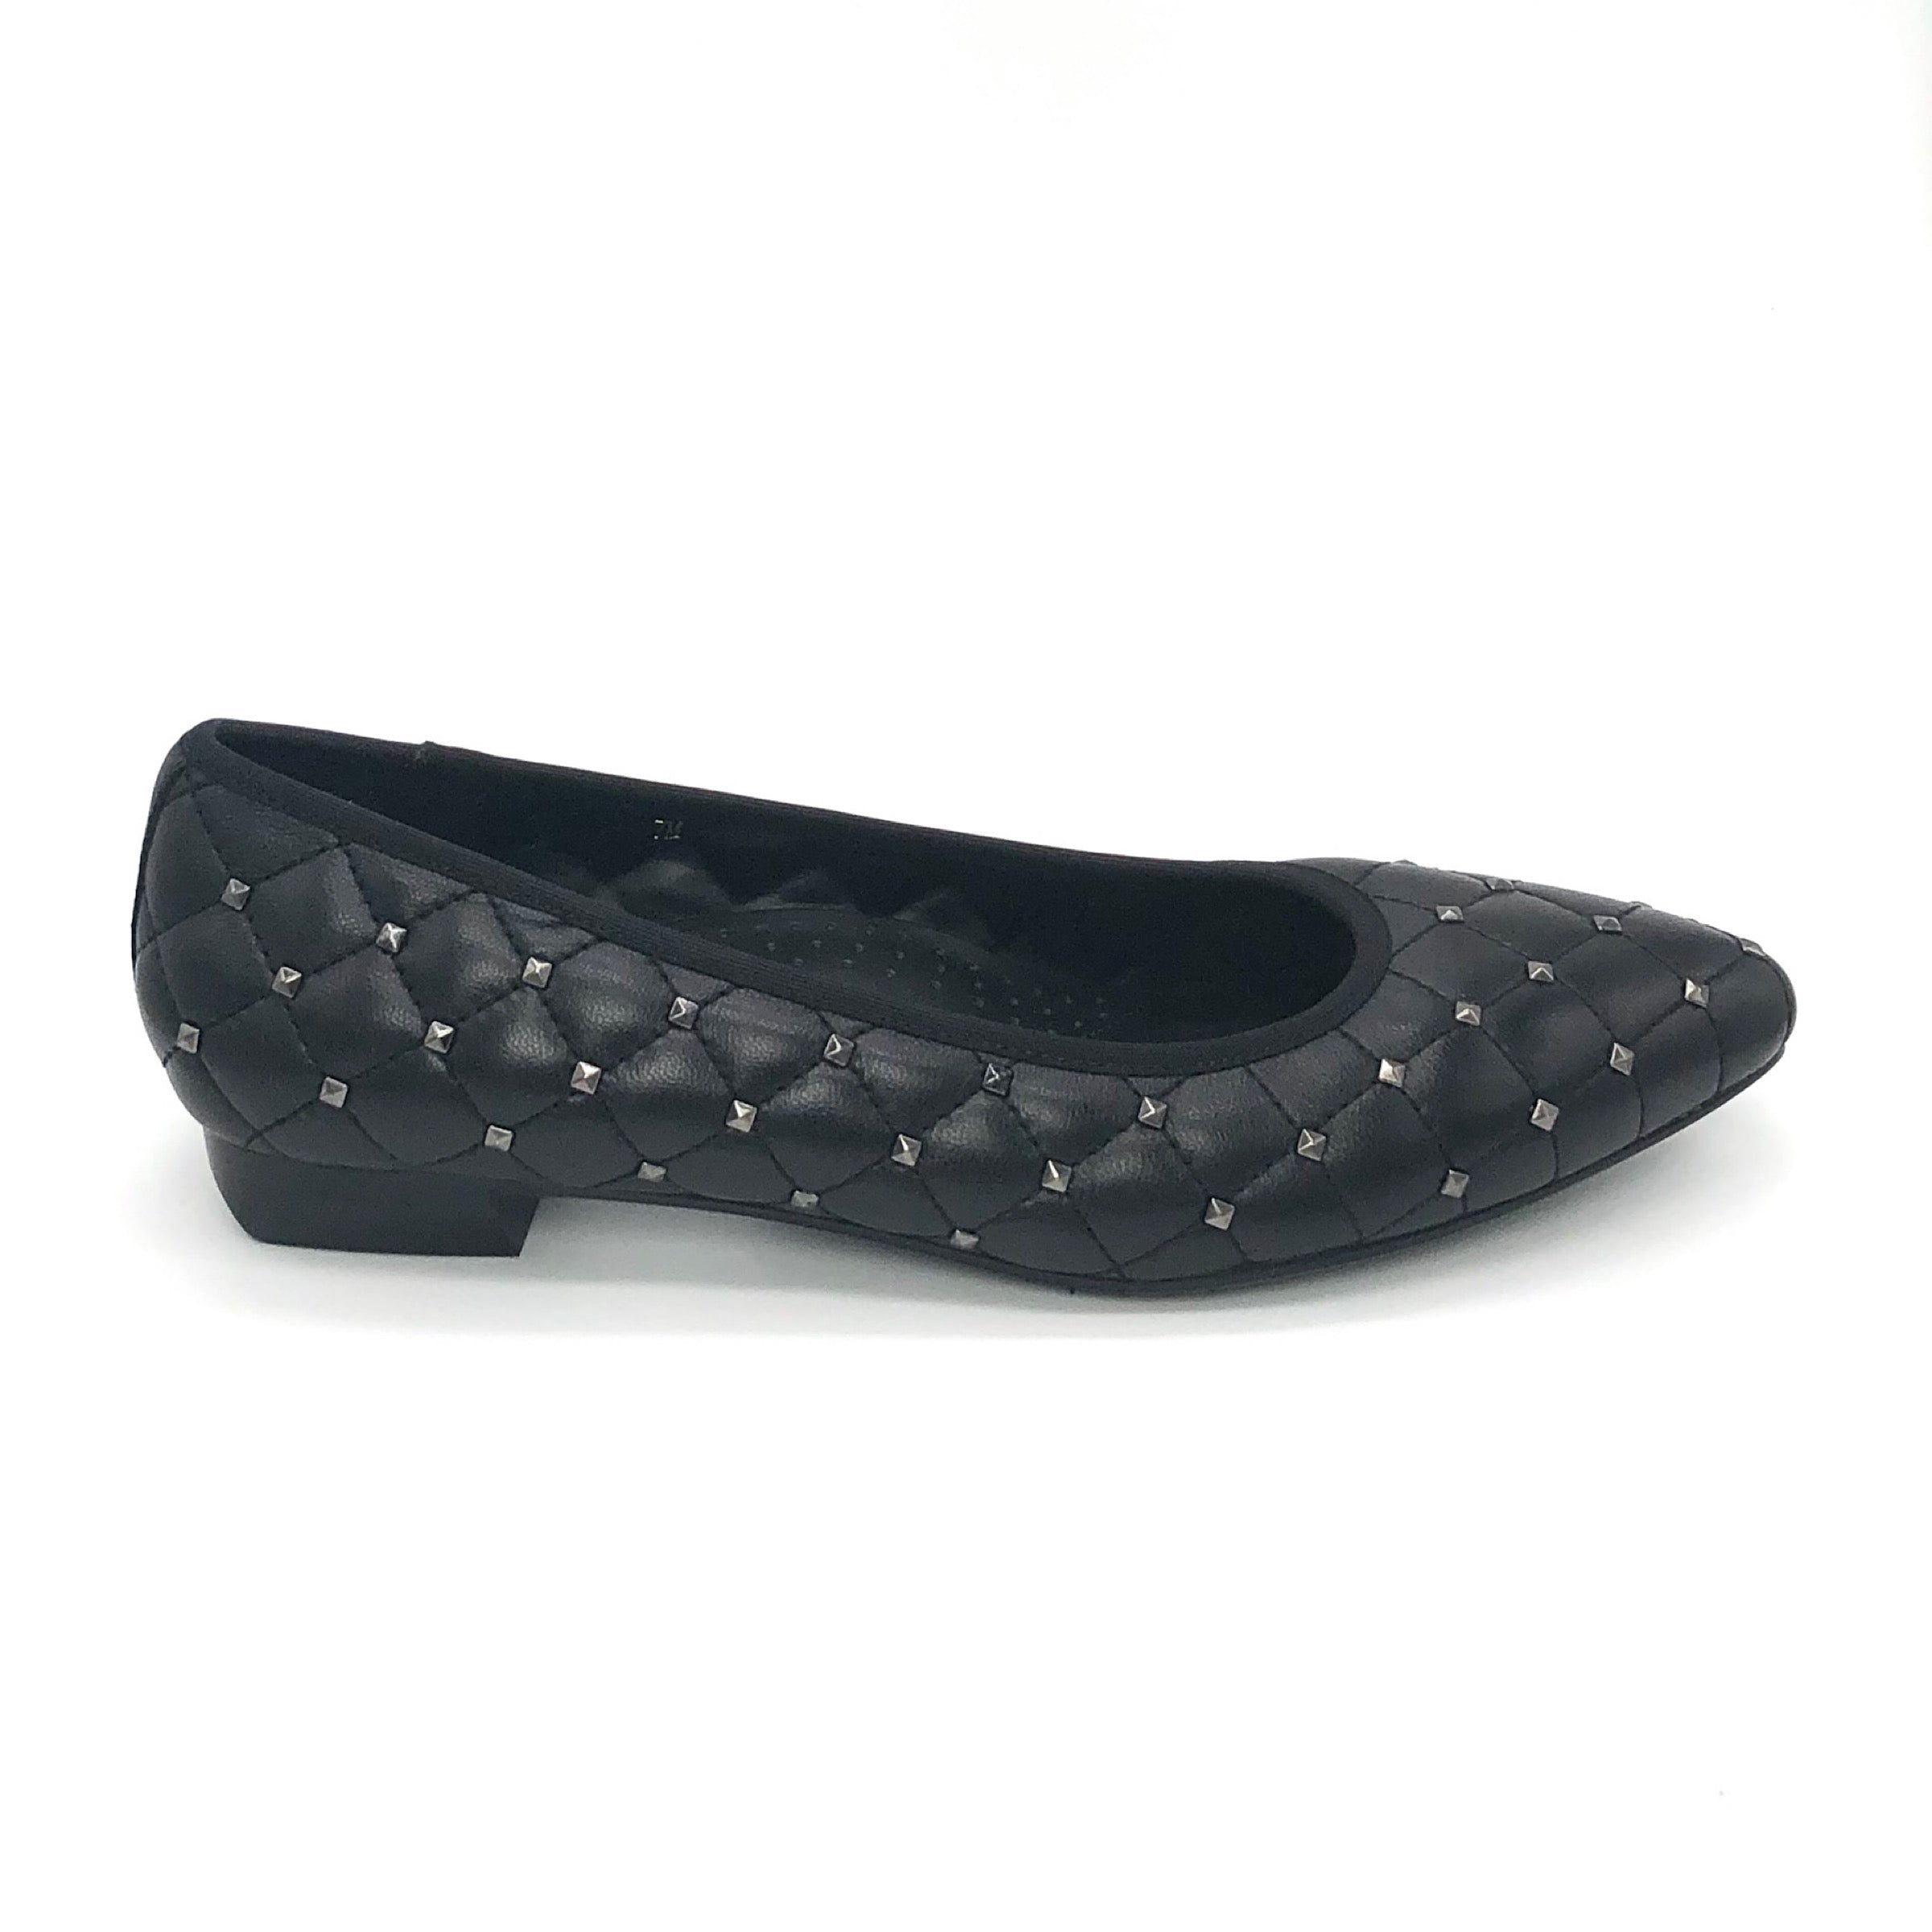 The Quilted Pyramid Stud Flat in Black